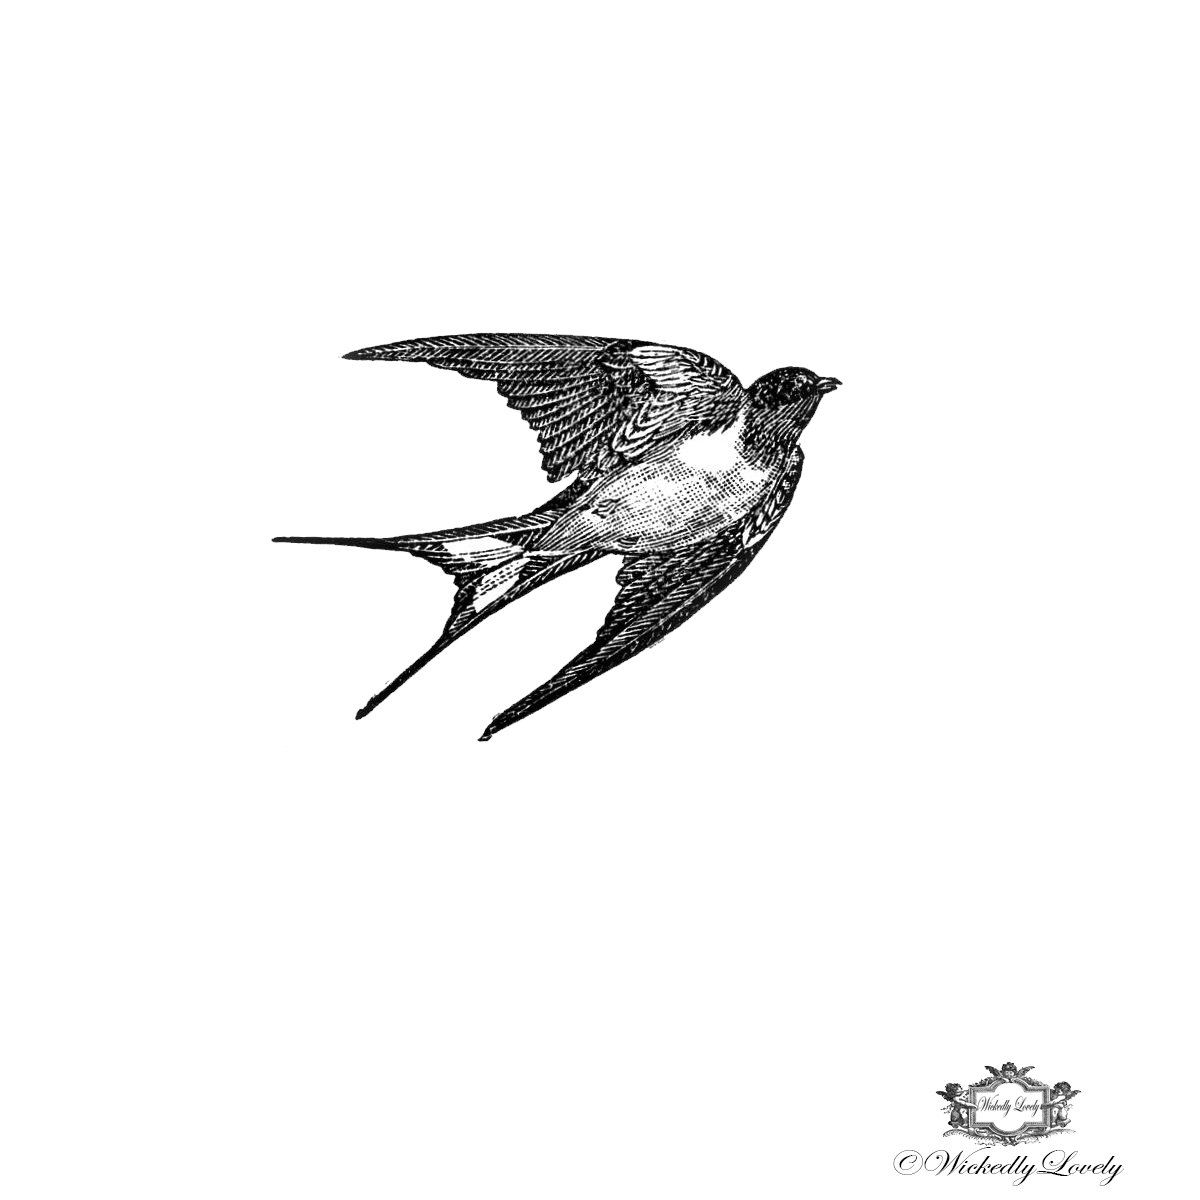 Black And White Vintage Swallow Tattoo Bird Body Art Wickedly Lovely Skin Includes 3 Tattoos By WickedlyLovelyArt On Etsy